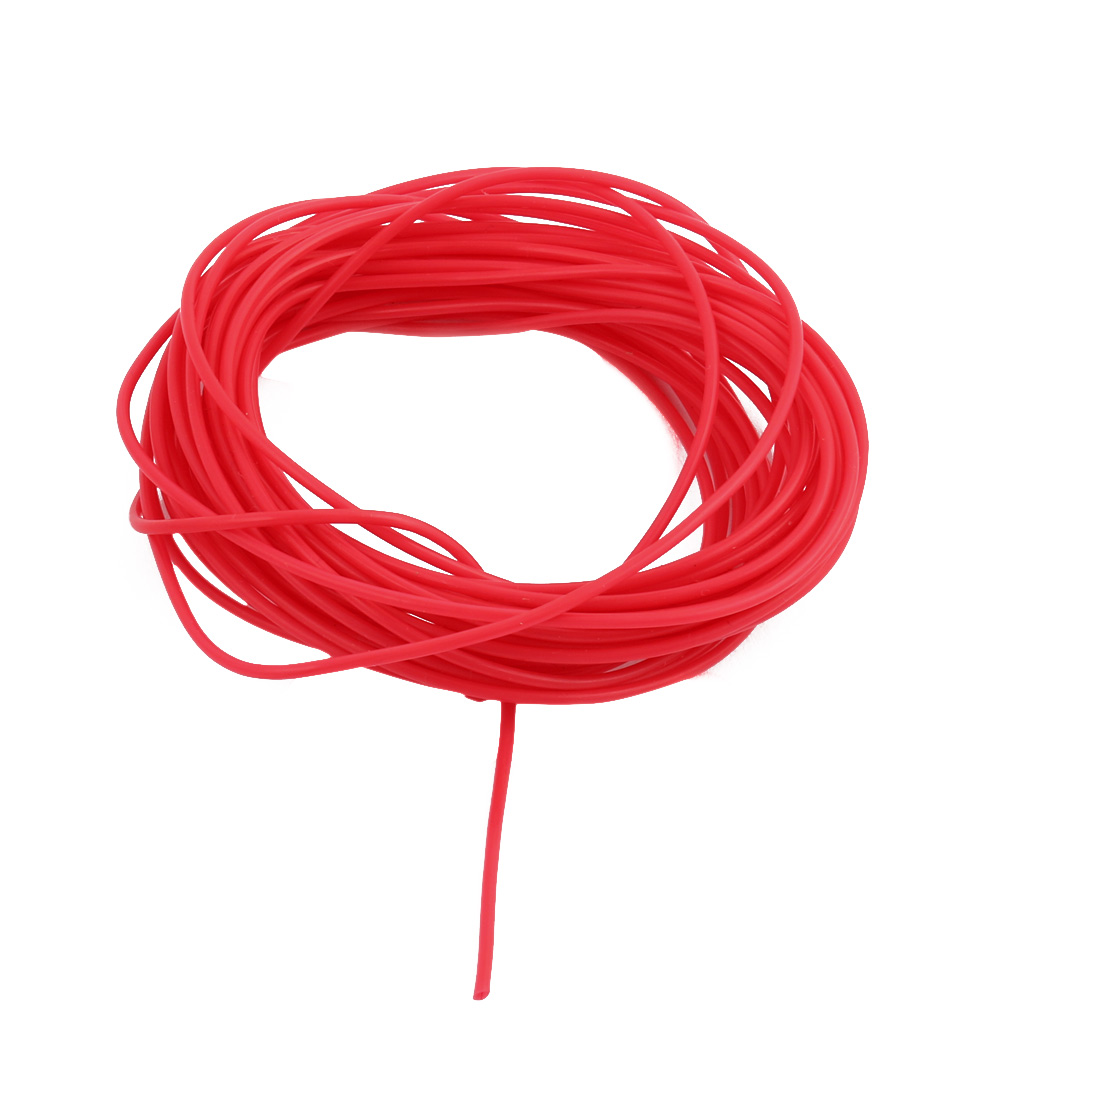 1.07mmx1.37mm PTFE Resistant High Temperature Red Tubing 5 Meters 16.4Ft